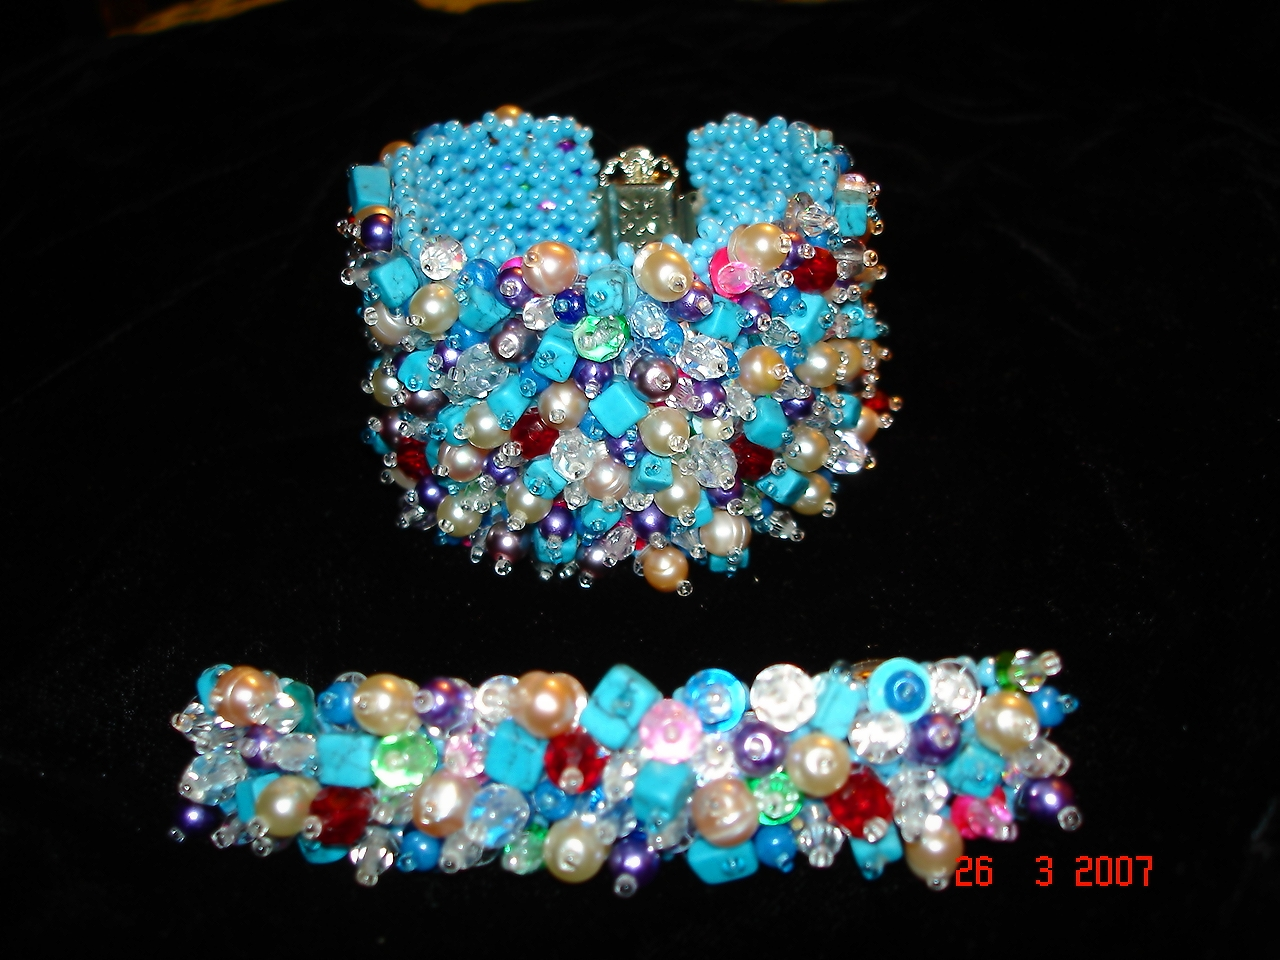 http://skaz1.com/beads/PC-Braslet_i_zakolka_v_stile_kitch2007.jpg